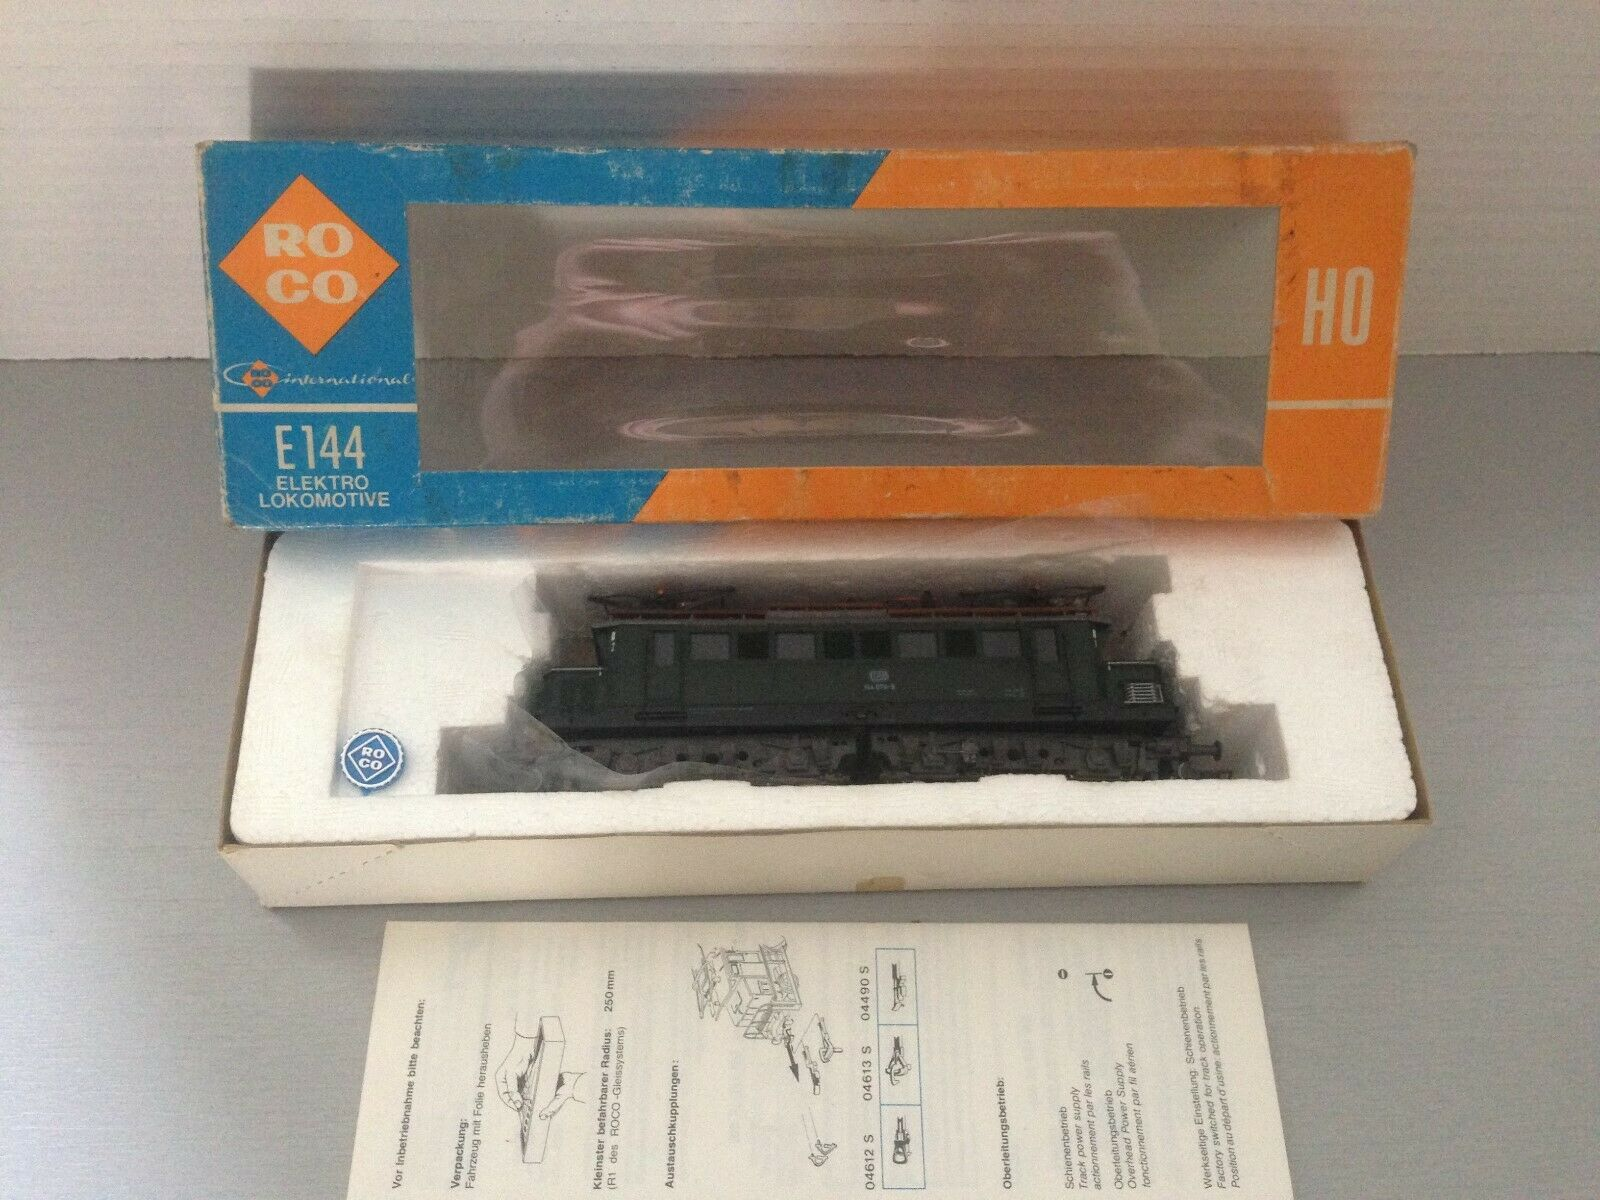 Roco 4131 B E144 Electric Locomotive scatolaed with instructions